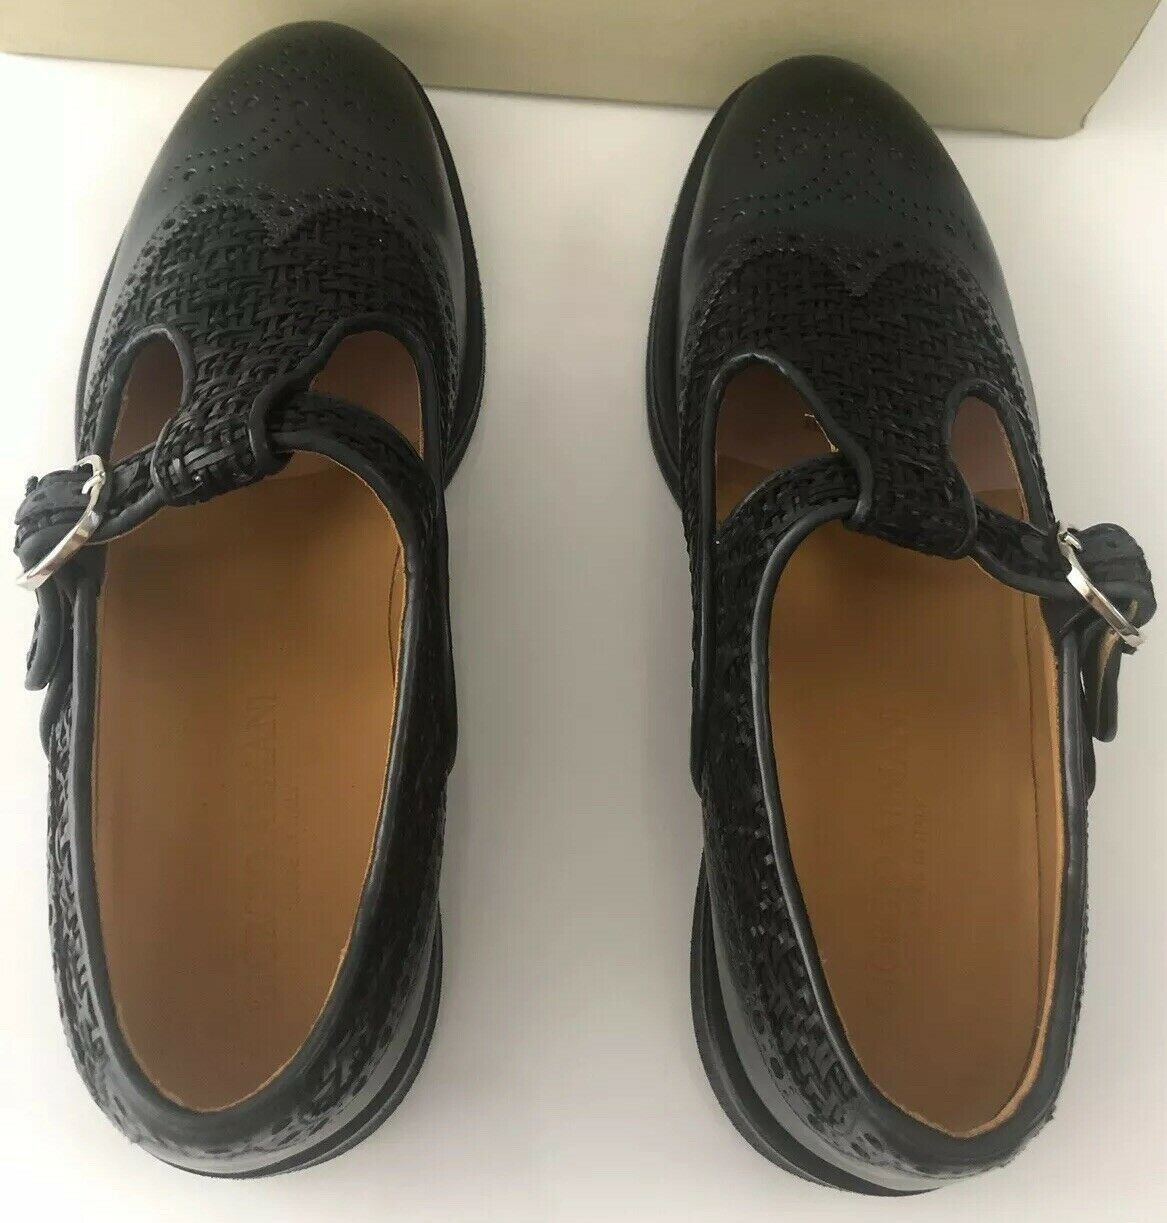 NIB $1275 Giorgio Armani Slipper Monkstrap Men's Sandals K151 8 US X2L084 IT